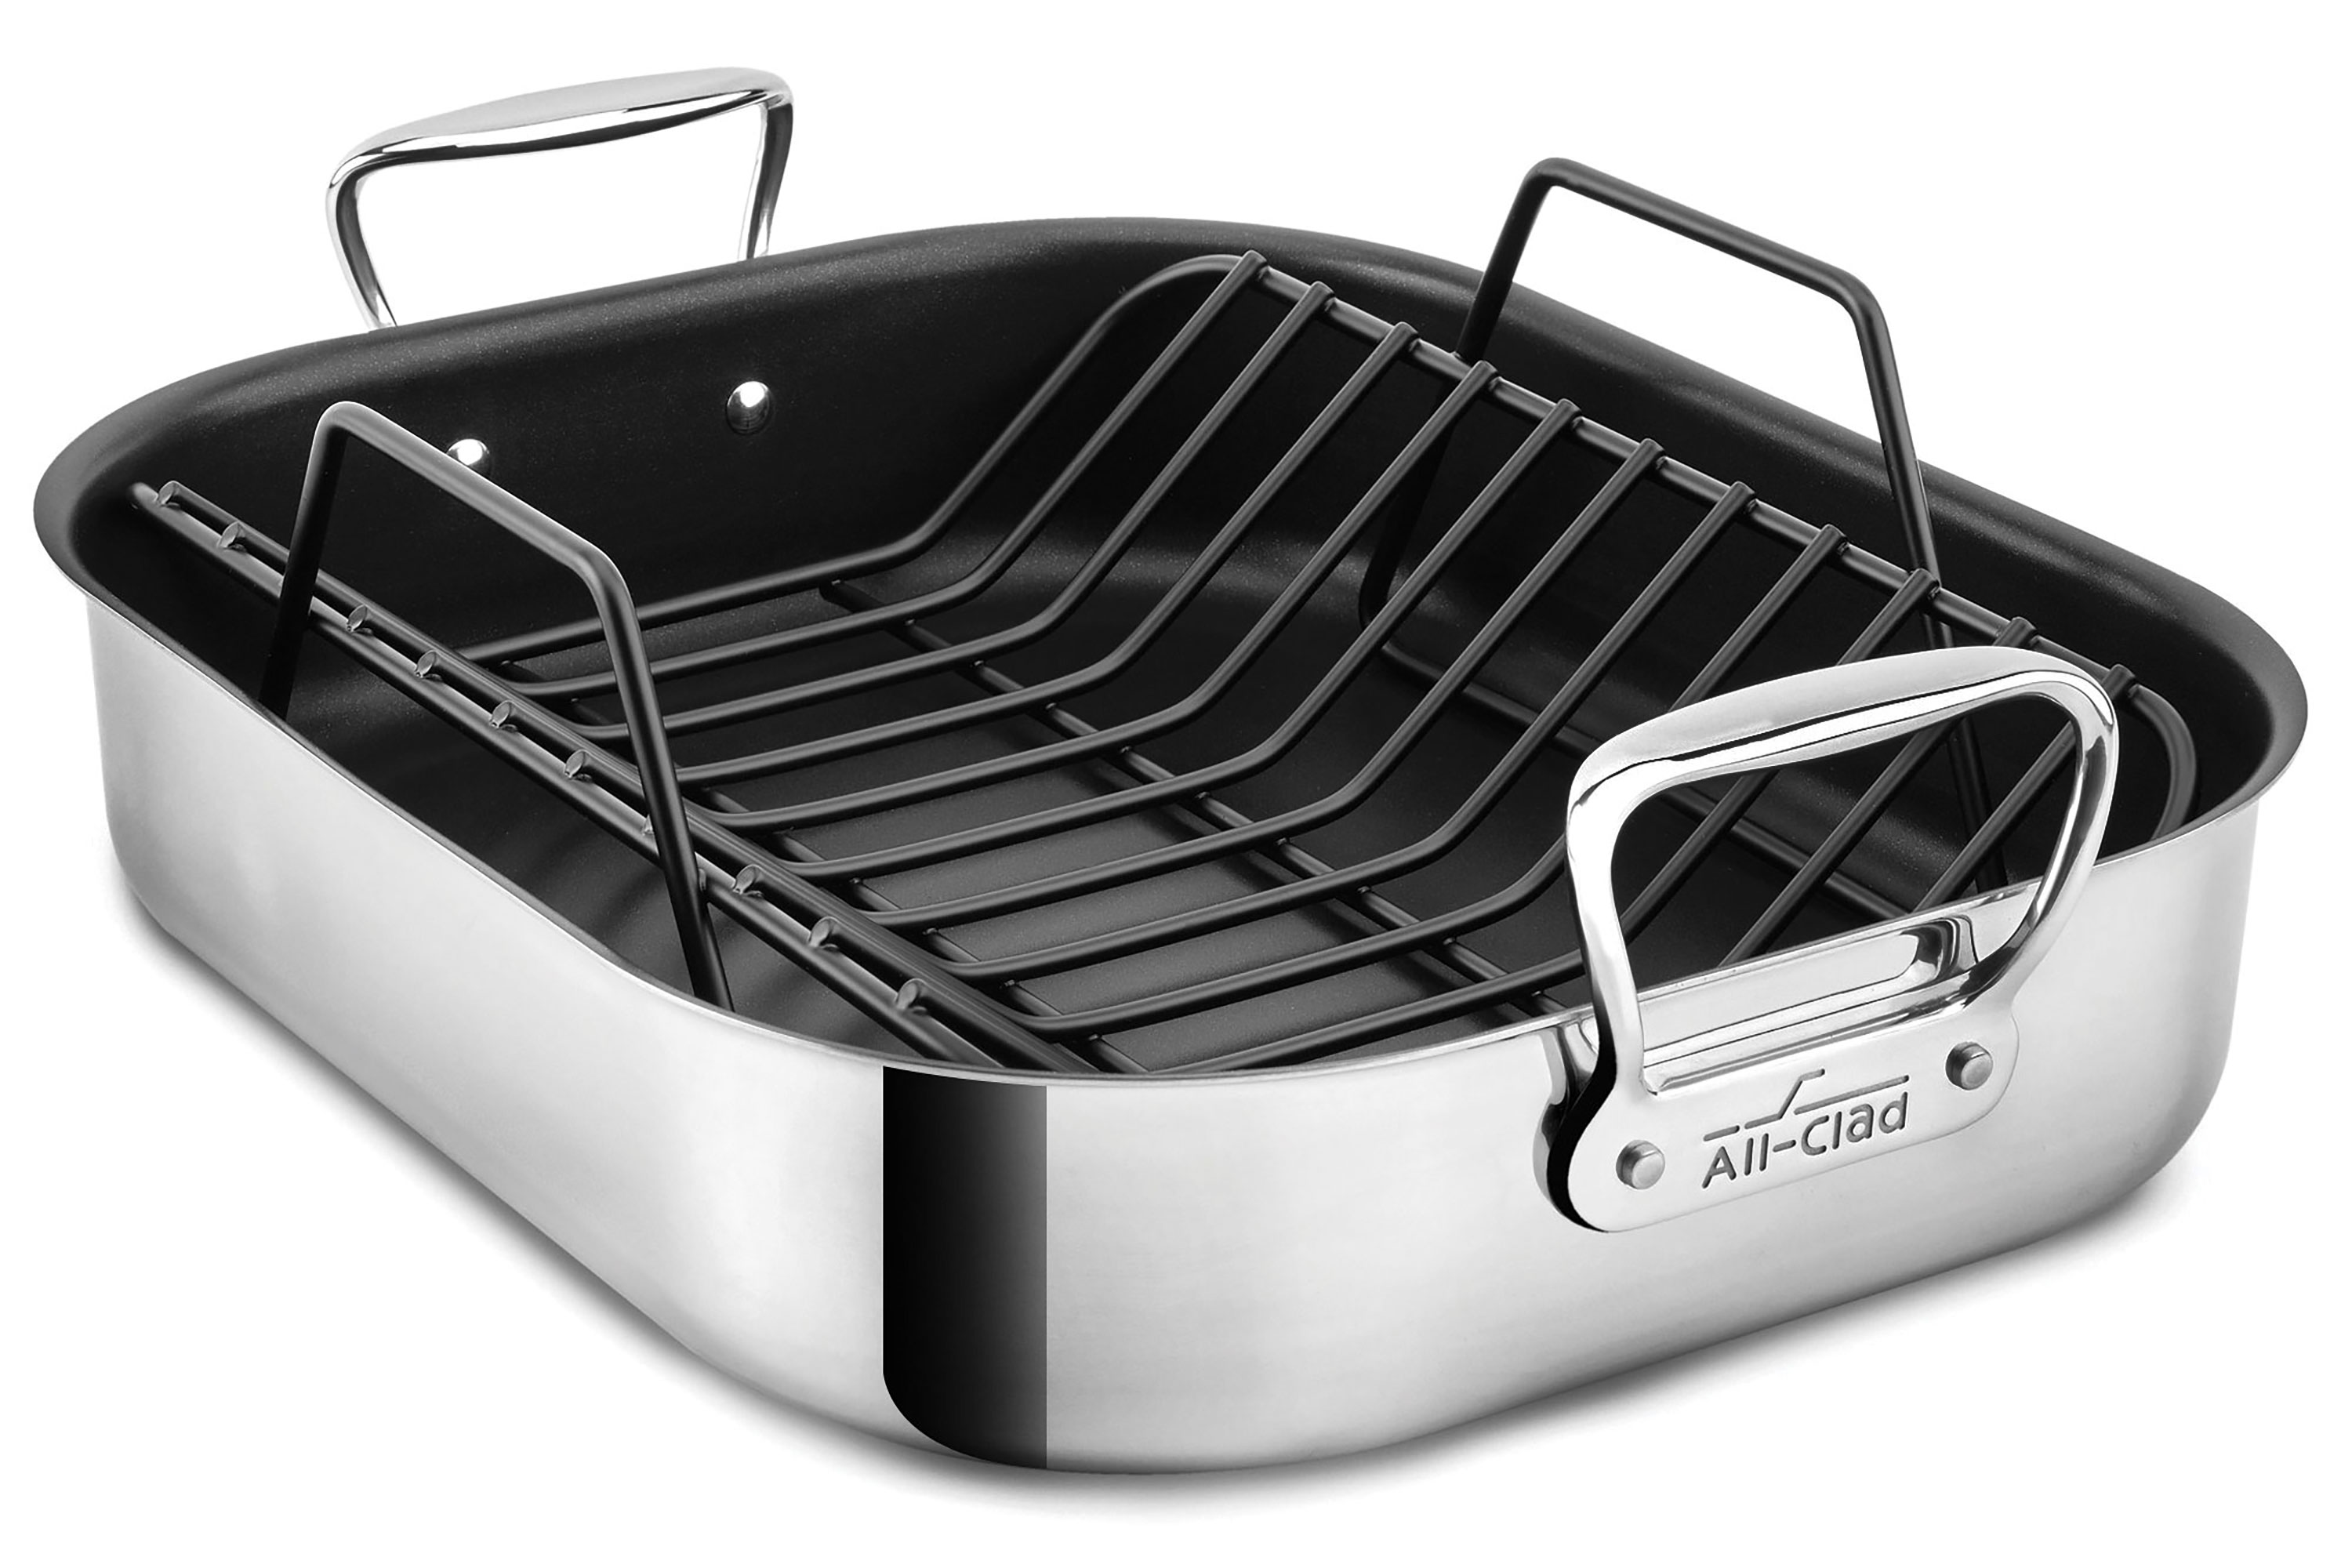 All Clad Nonstick Roasting Pan With Rack 16 X 13 Inch